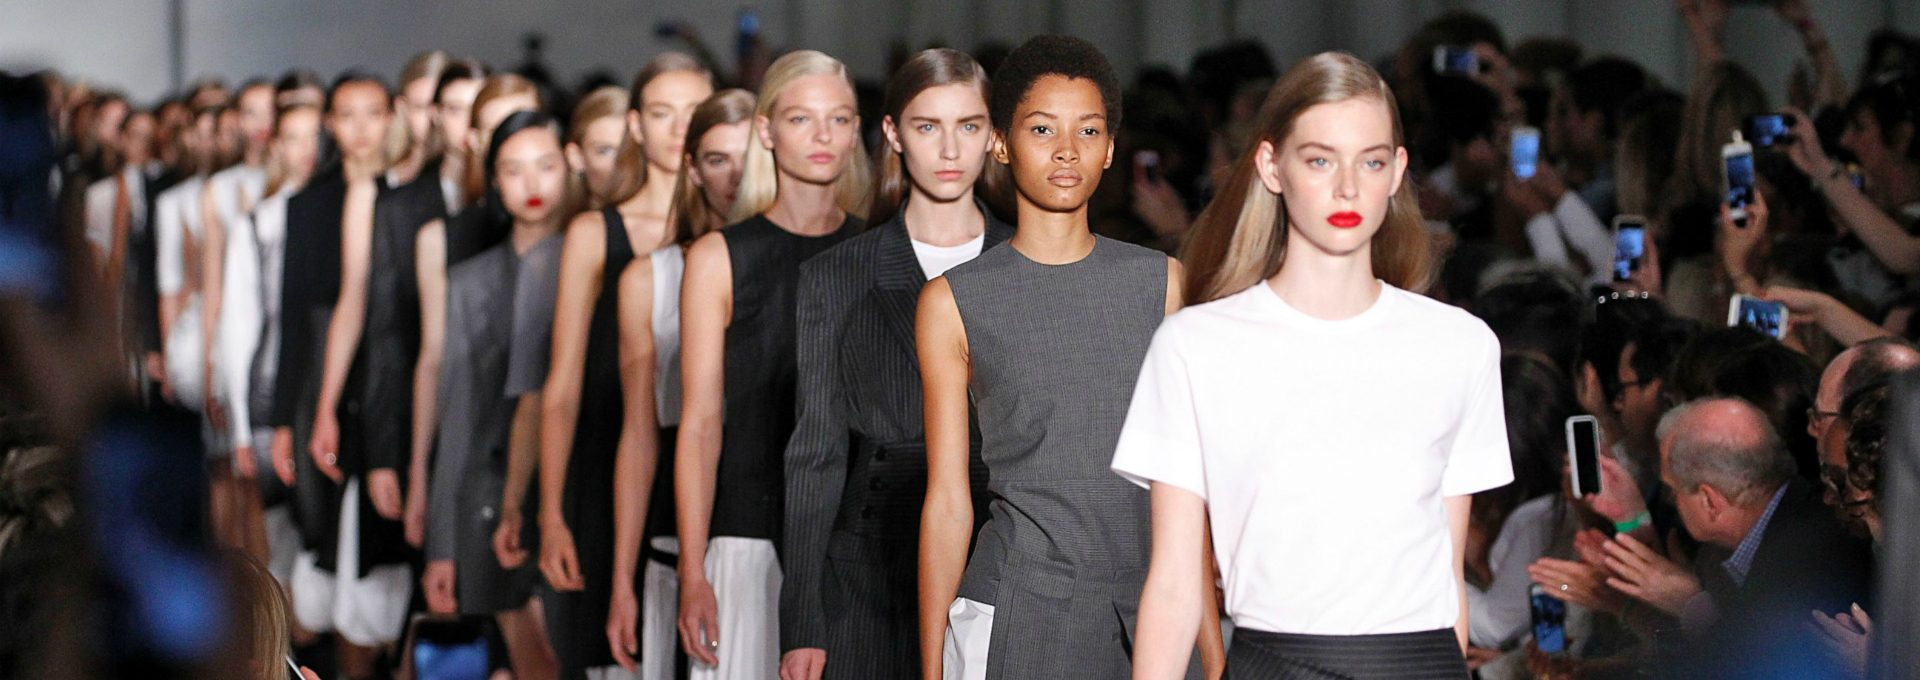 Fashion Trends - What to Expect From New York Fashion Week 2018 ➤ Discover the season's newest design news and inspiration ideas. Visit Daily Design News and subscribe our newsletter! #dailydesignnews #designnews #bestdesignevets #fashionnews #NewYorkFashionWeek2018 #NewYorFashionWeek #NYFW #NYWF2018